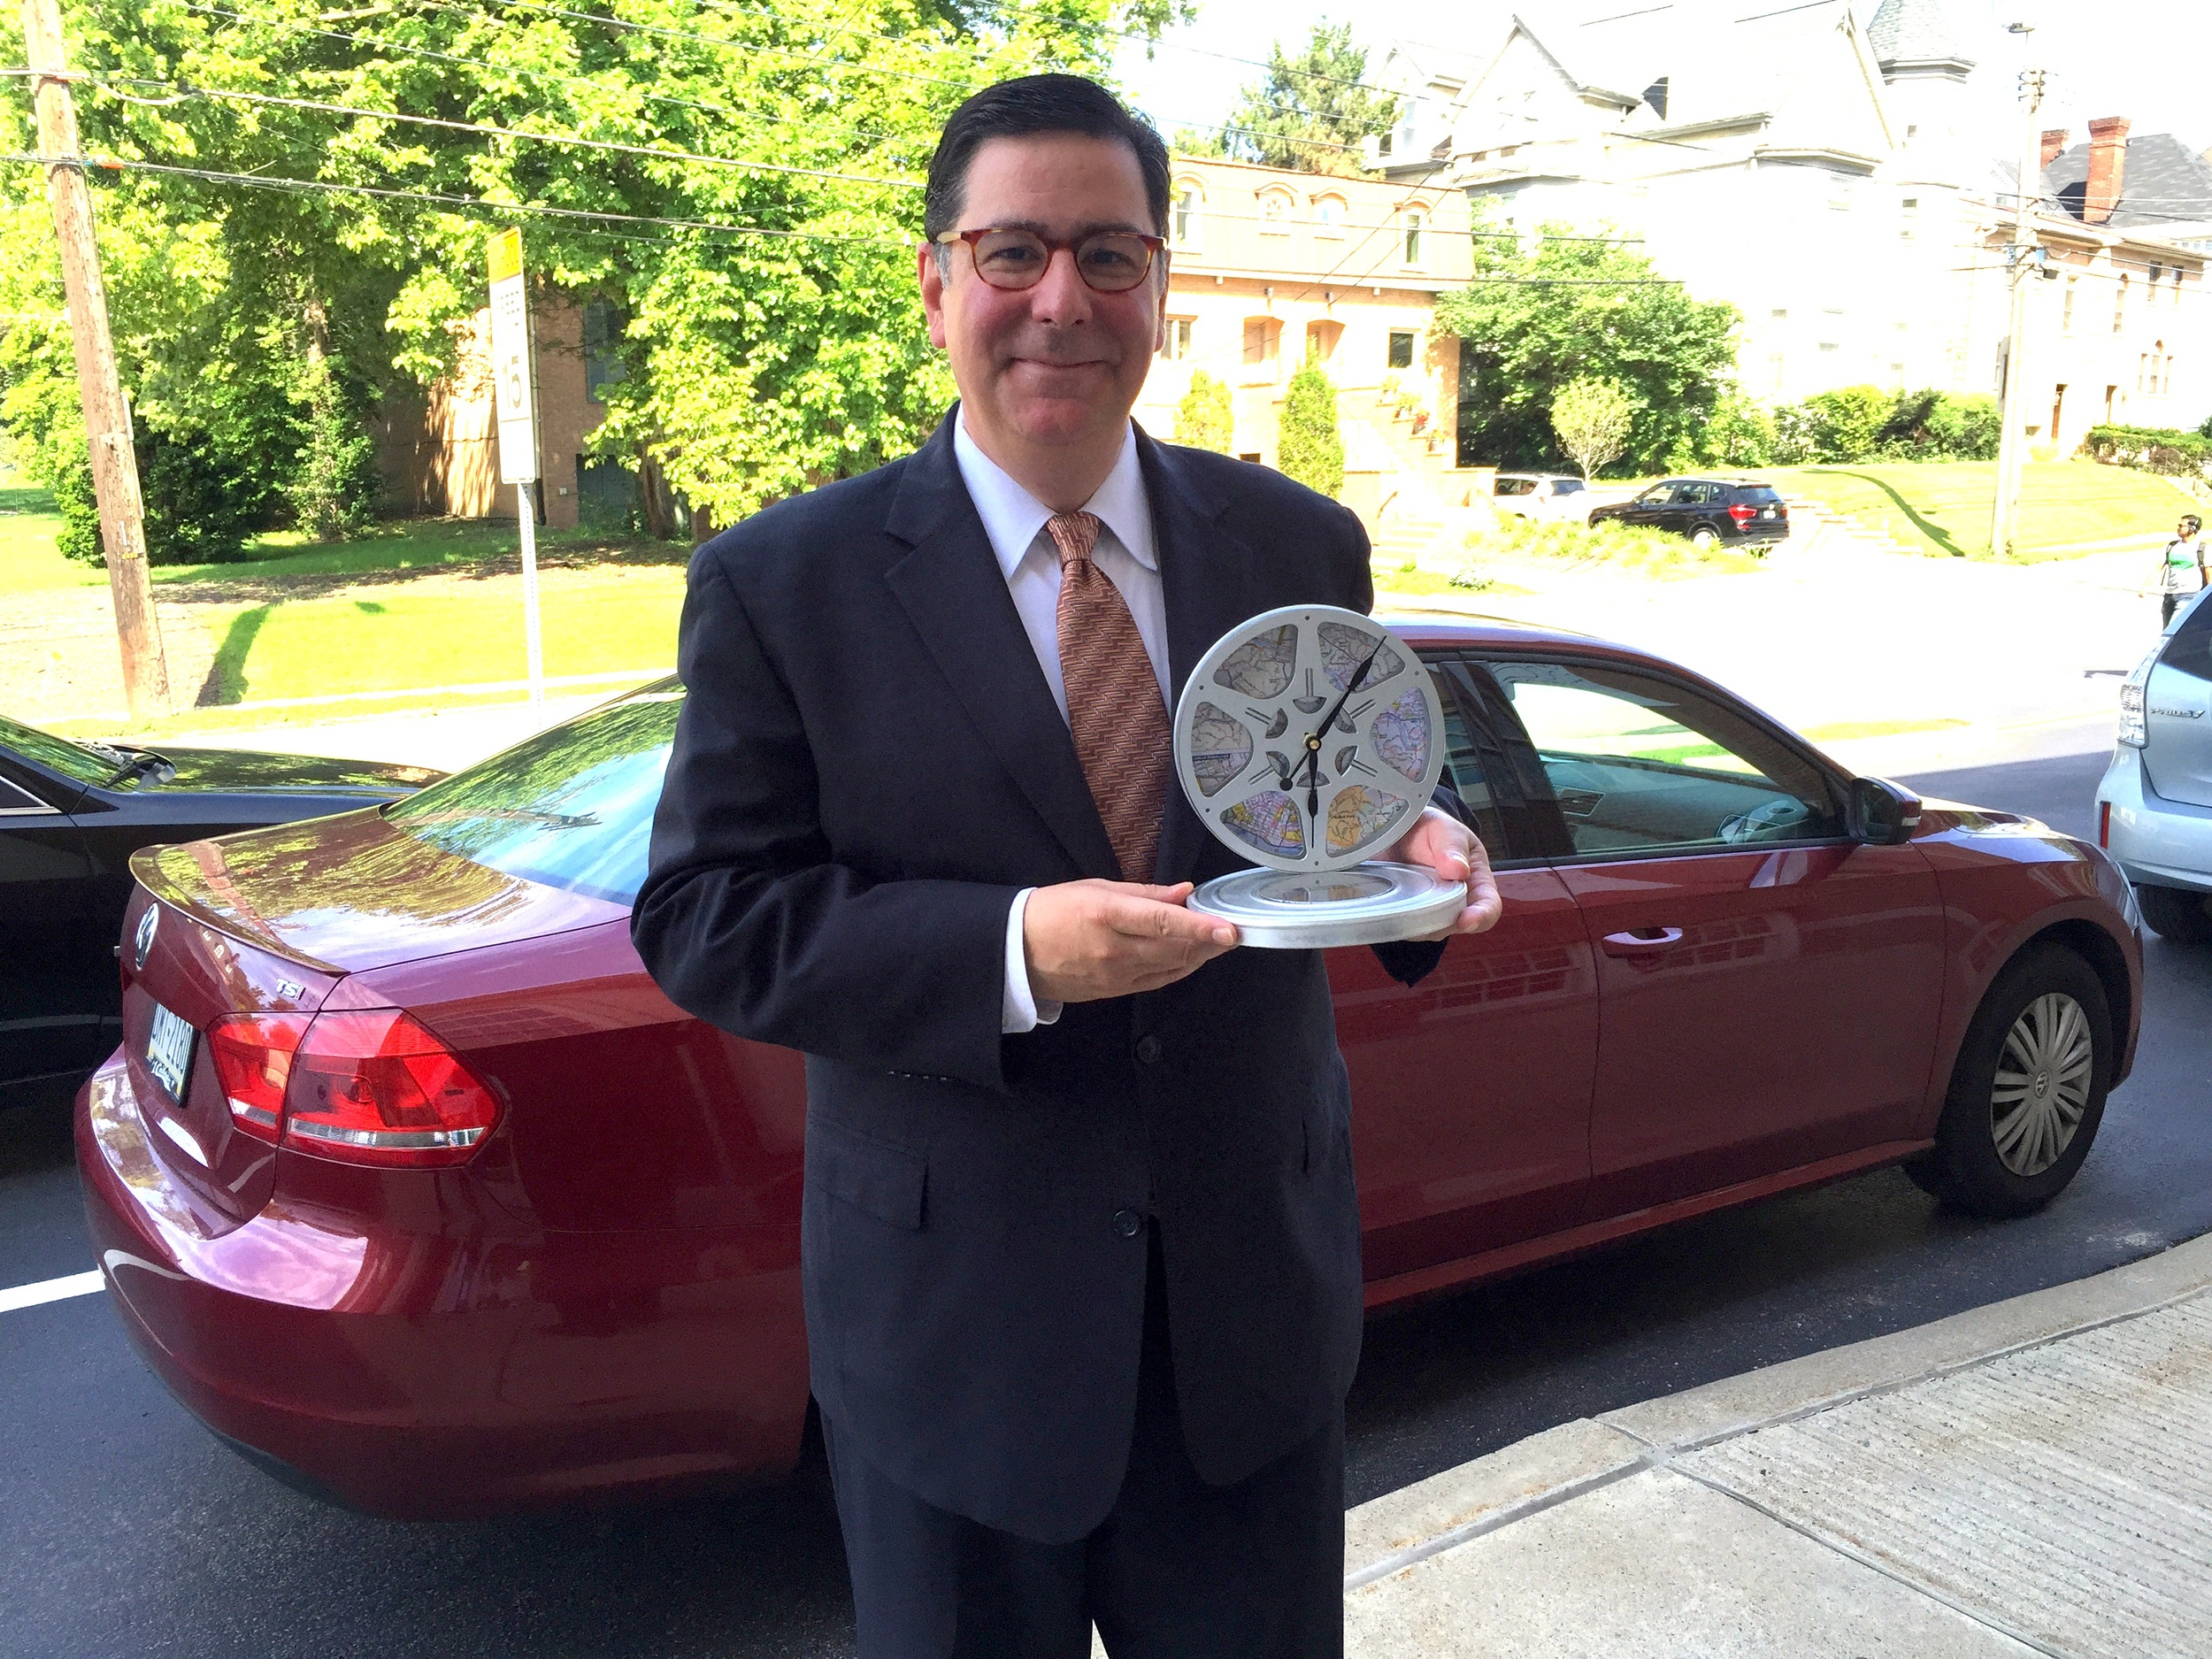 Mayor Paduto and his Person of the Year Award.